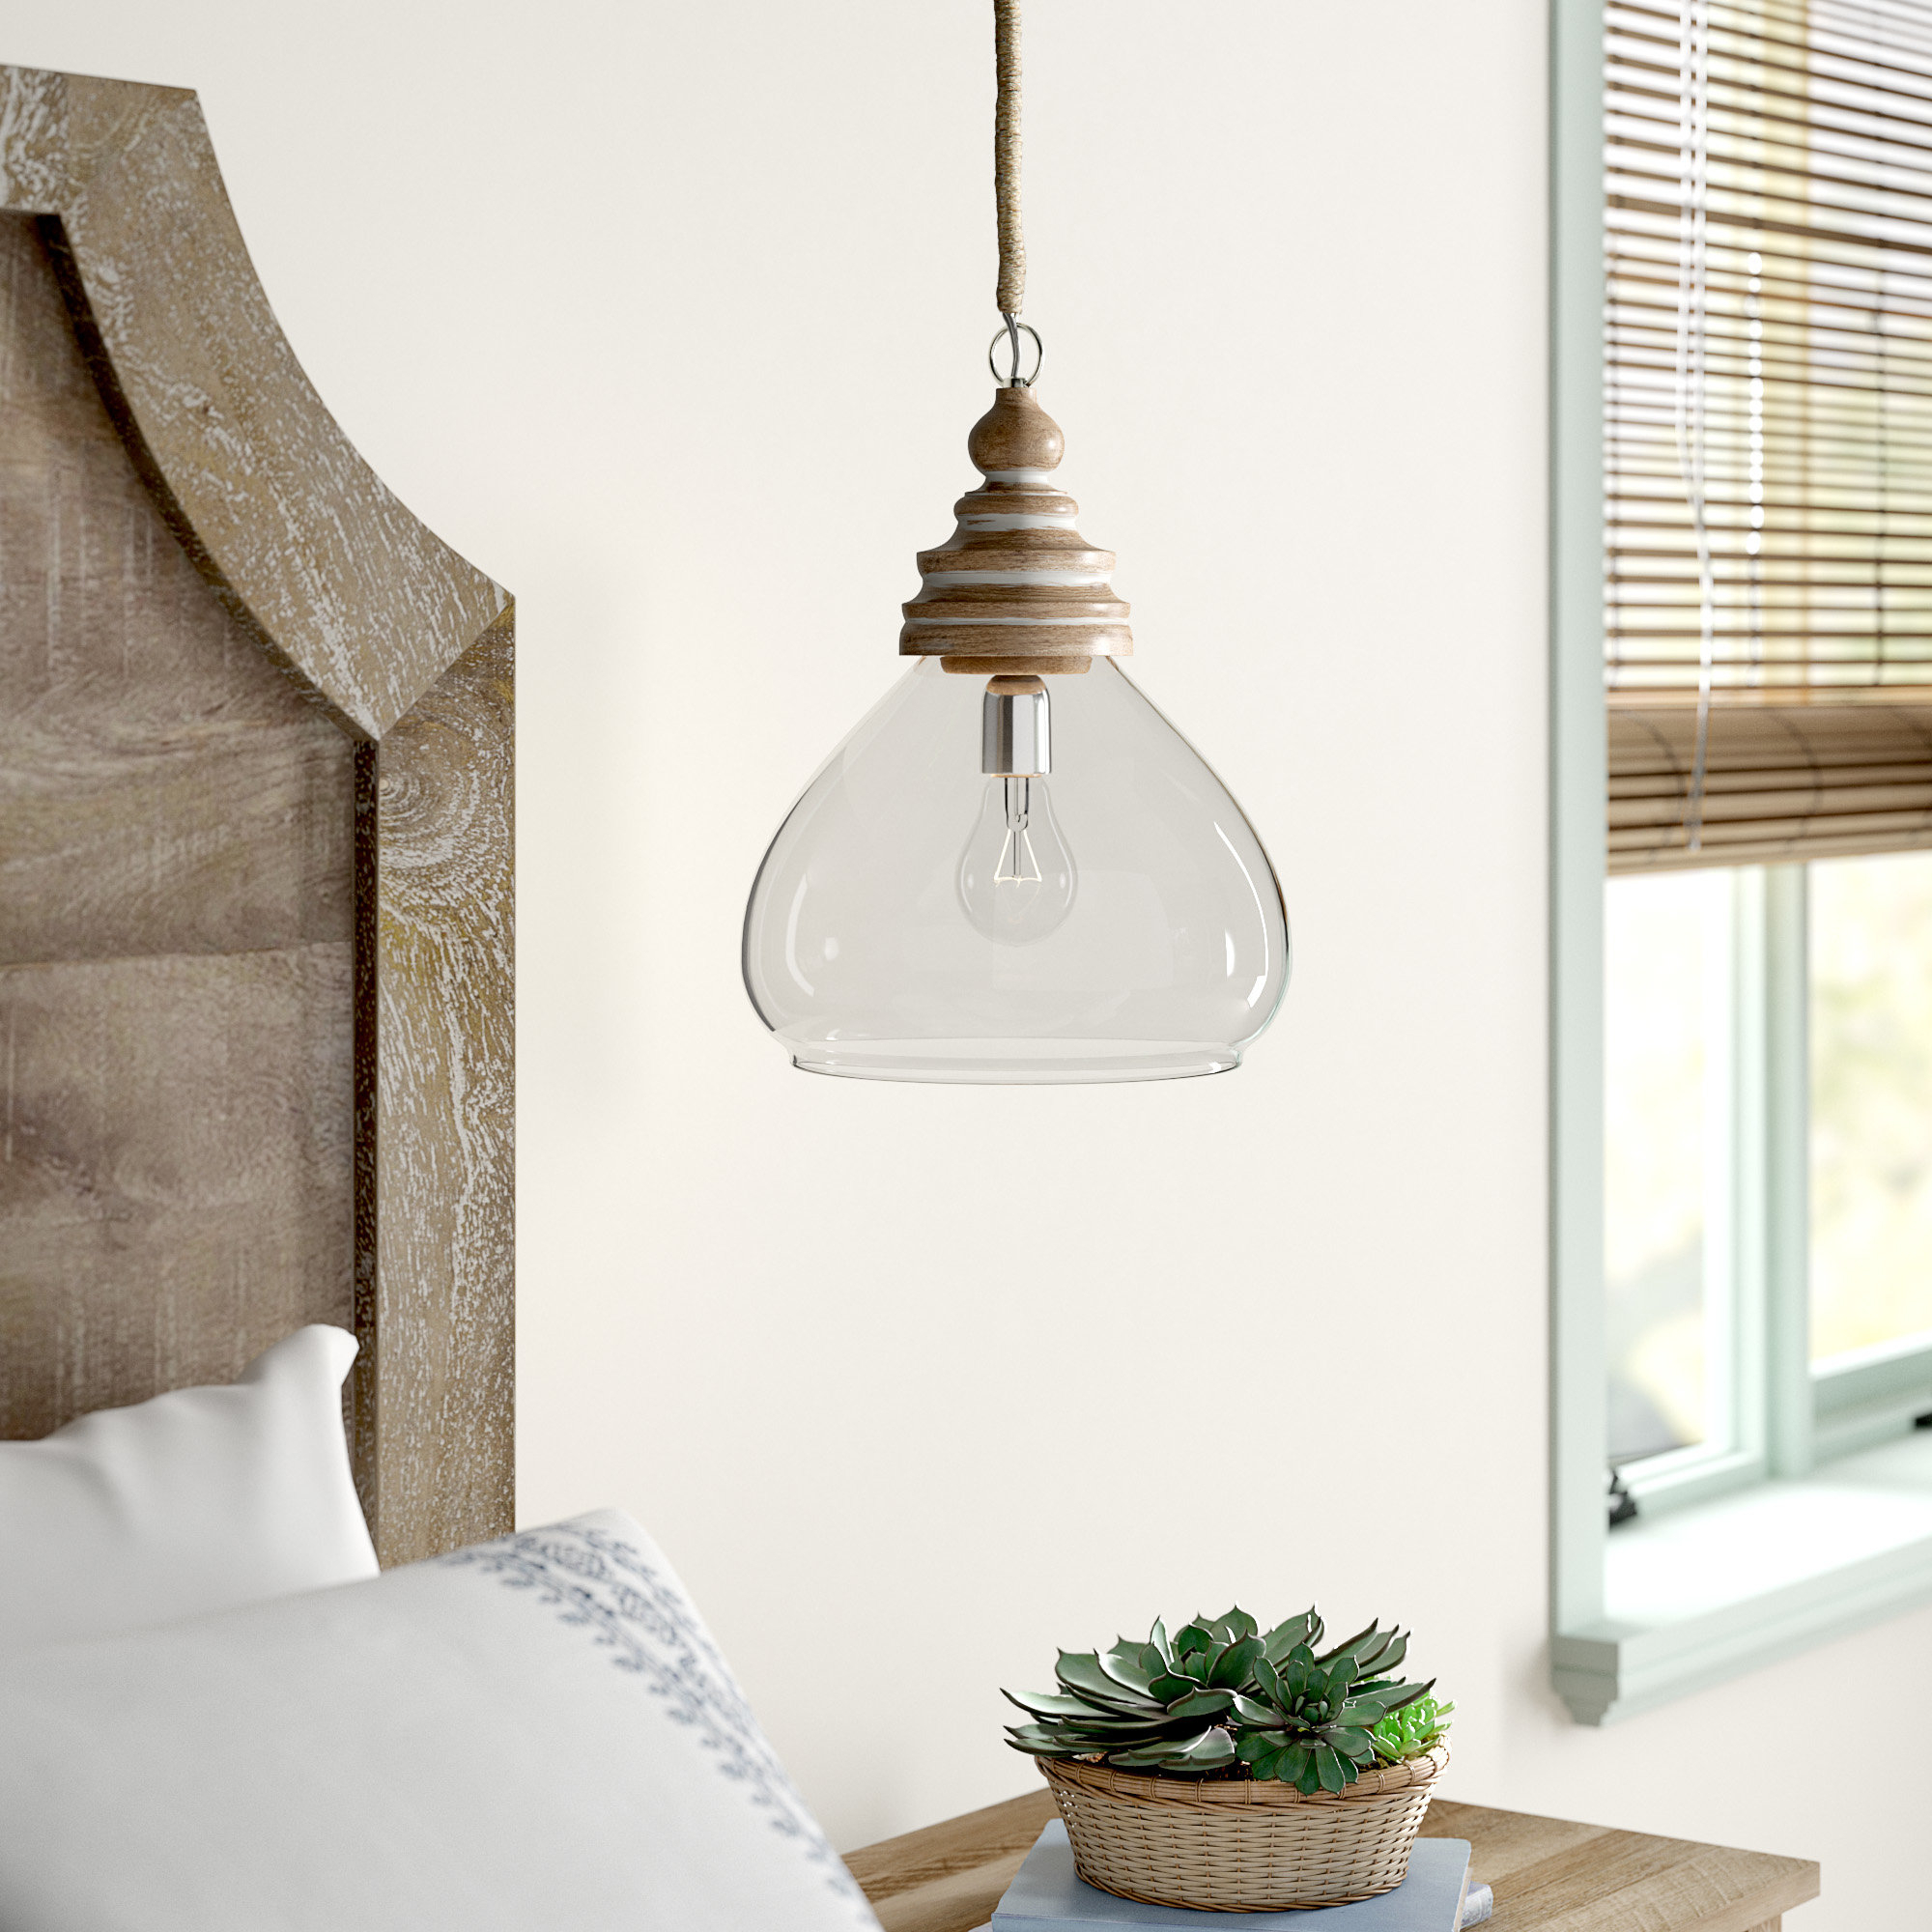 Brisa 1 Light Single Dome Pendant Throughout Most Recent Conard 1 Light Single Teardrop Pendants (View 15 of 25)